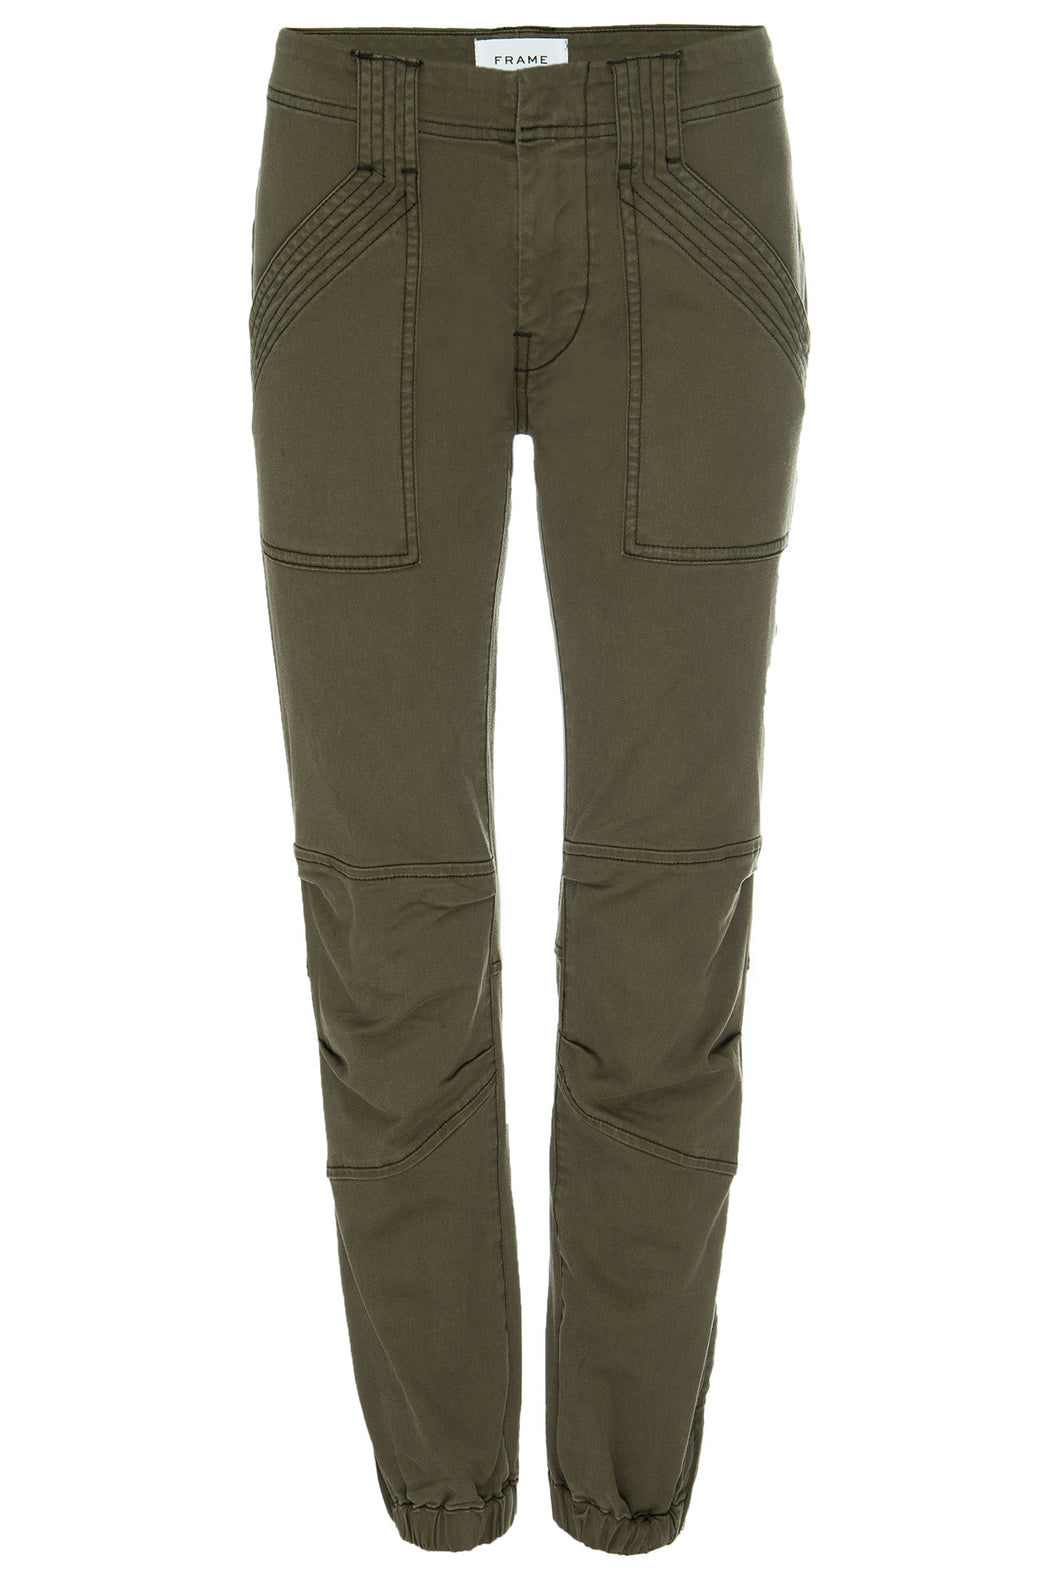 FRAME-Banded-Bottom-Trapunto-Moto-Pant-Washed-Army